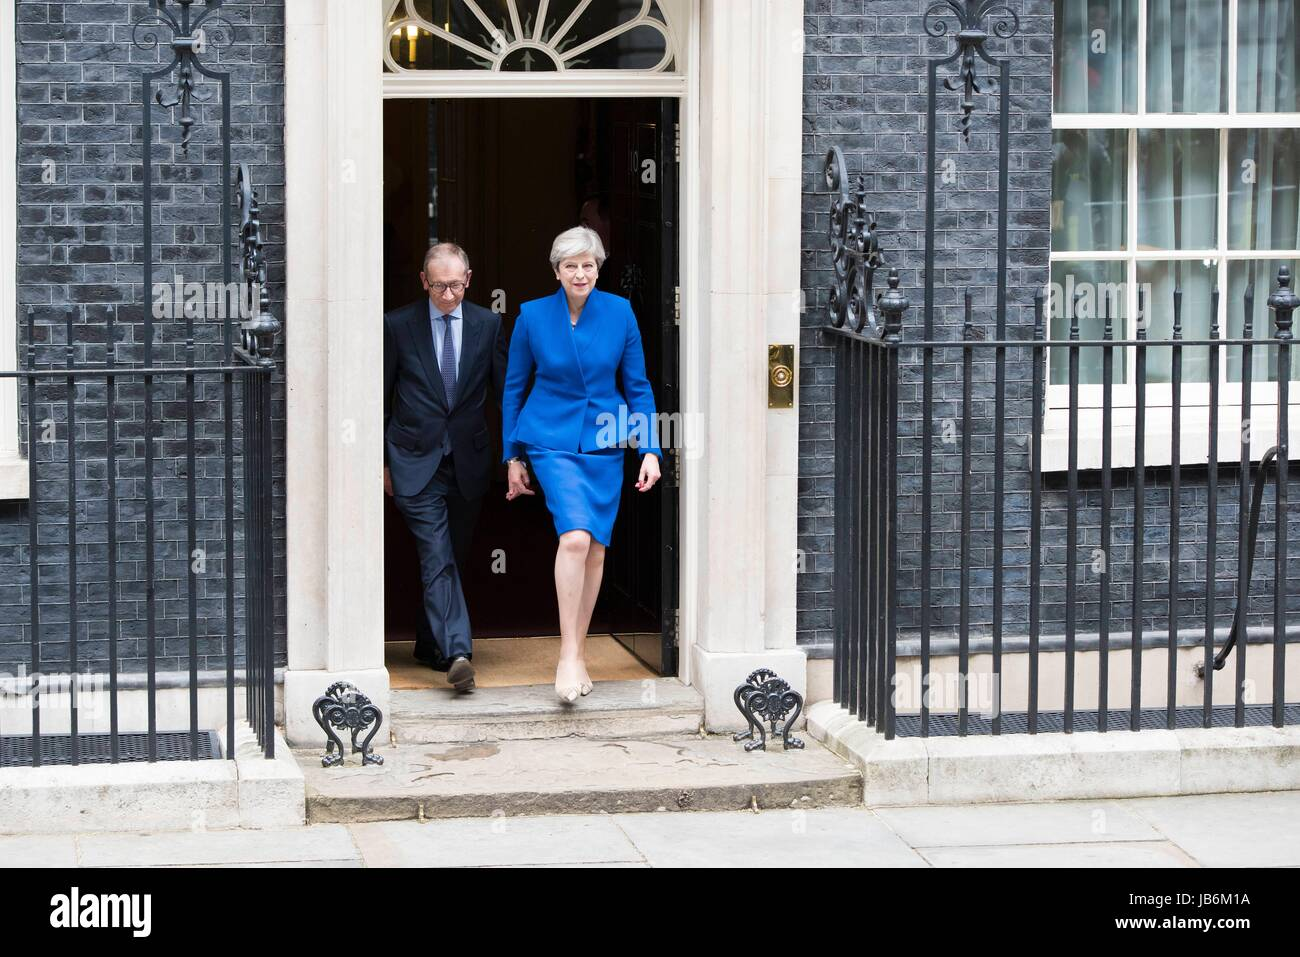 London, UK. 9th Jun, 2017. A hung parliament as May fails to win majority. Prime Minister and Conservative Party Stock Photo